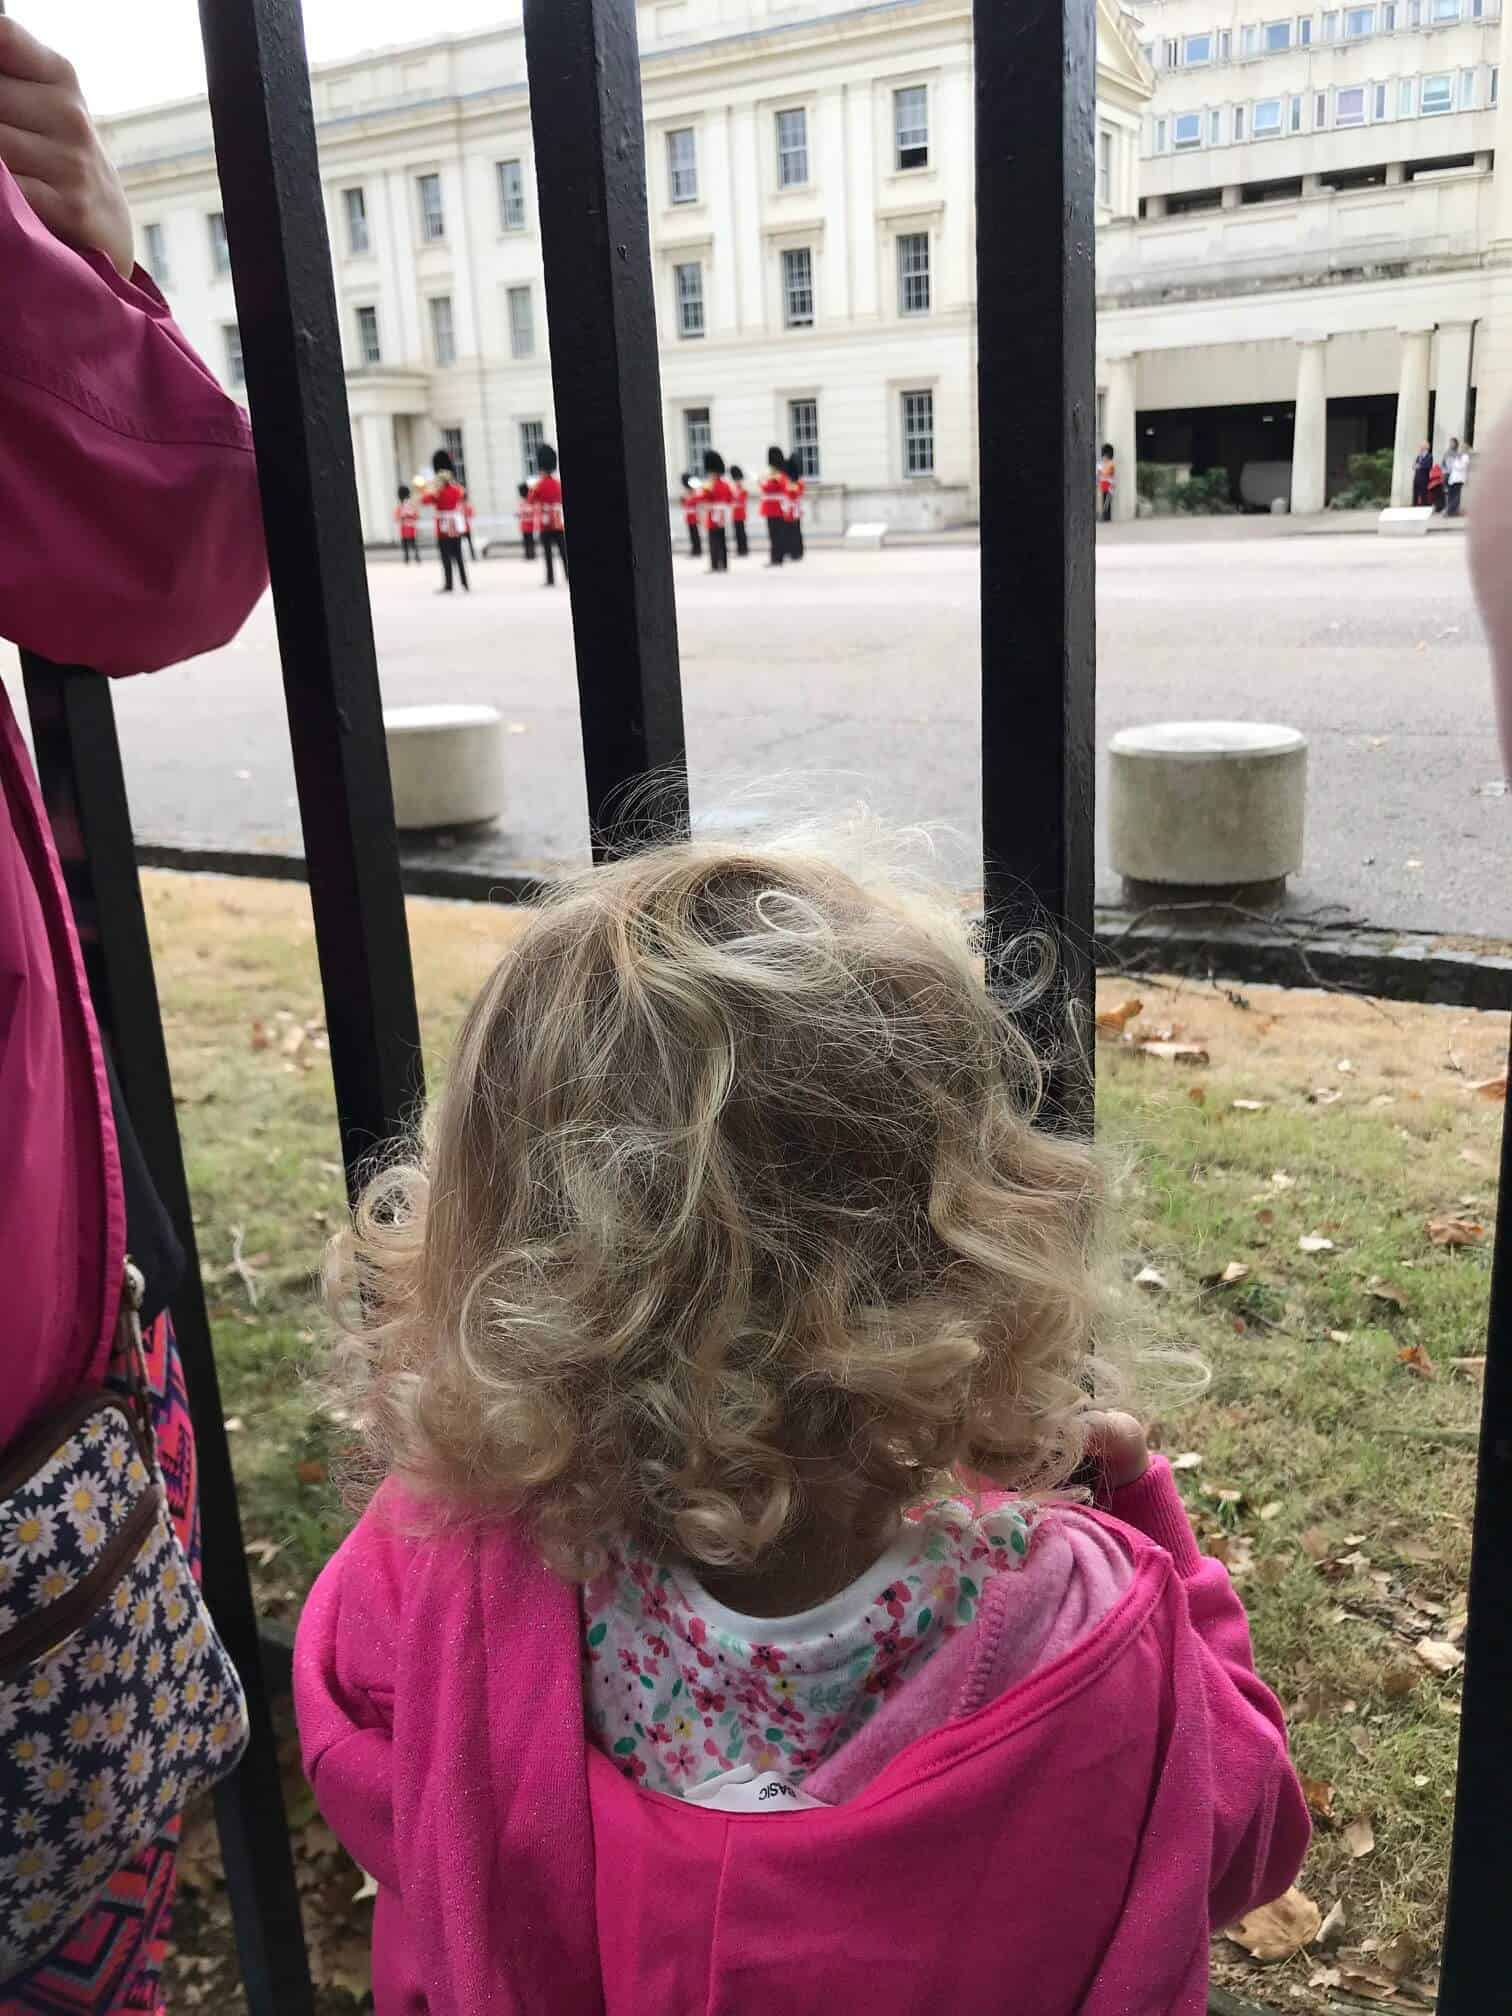 Where to Watch the Changing of the Guard with kids or without. Watching changing of the guard with children